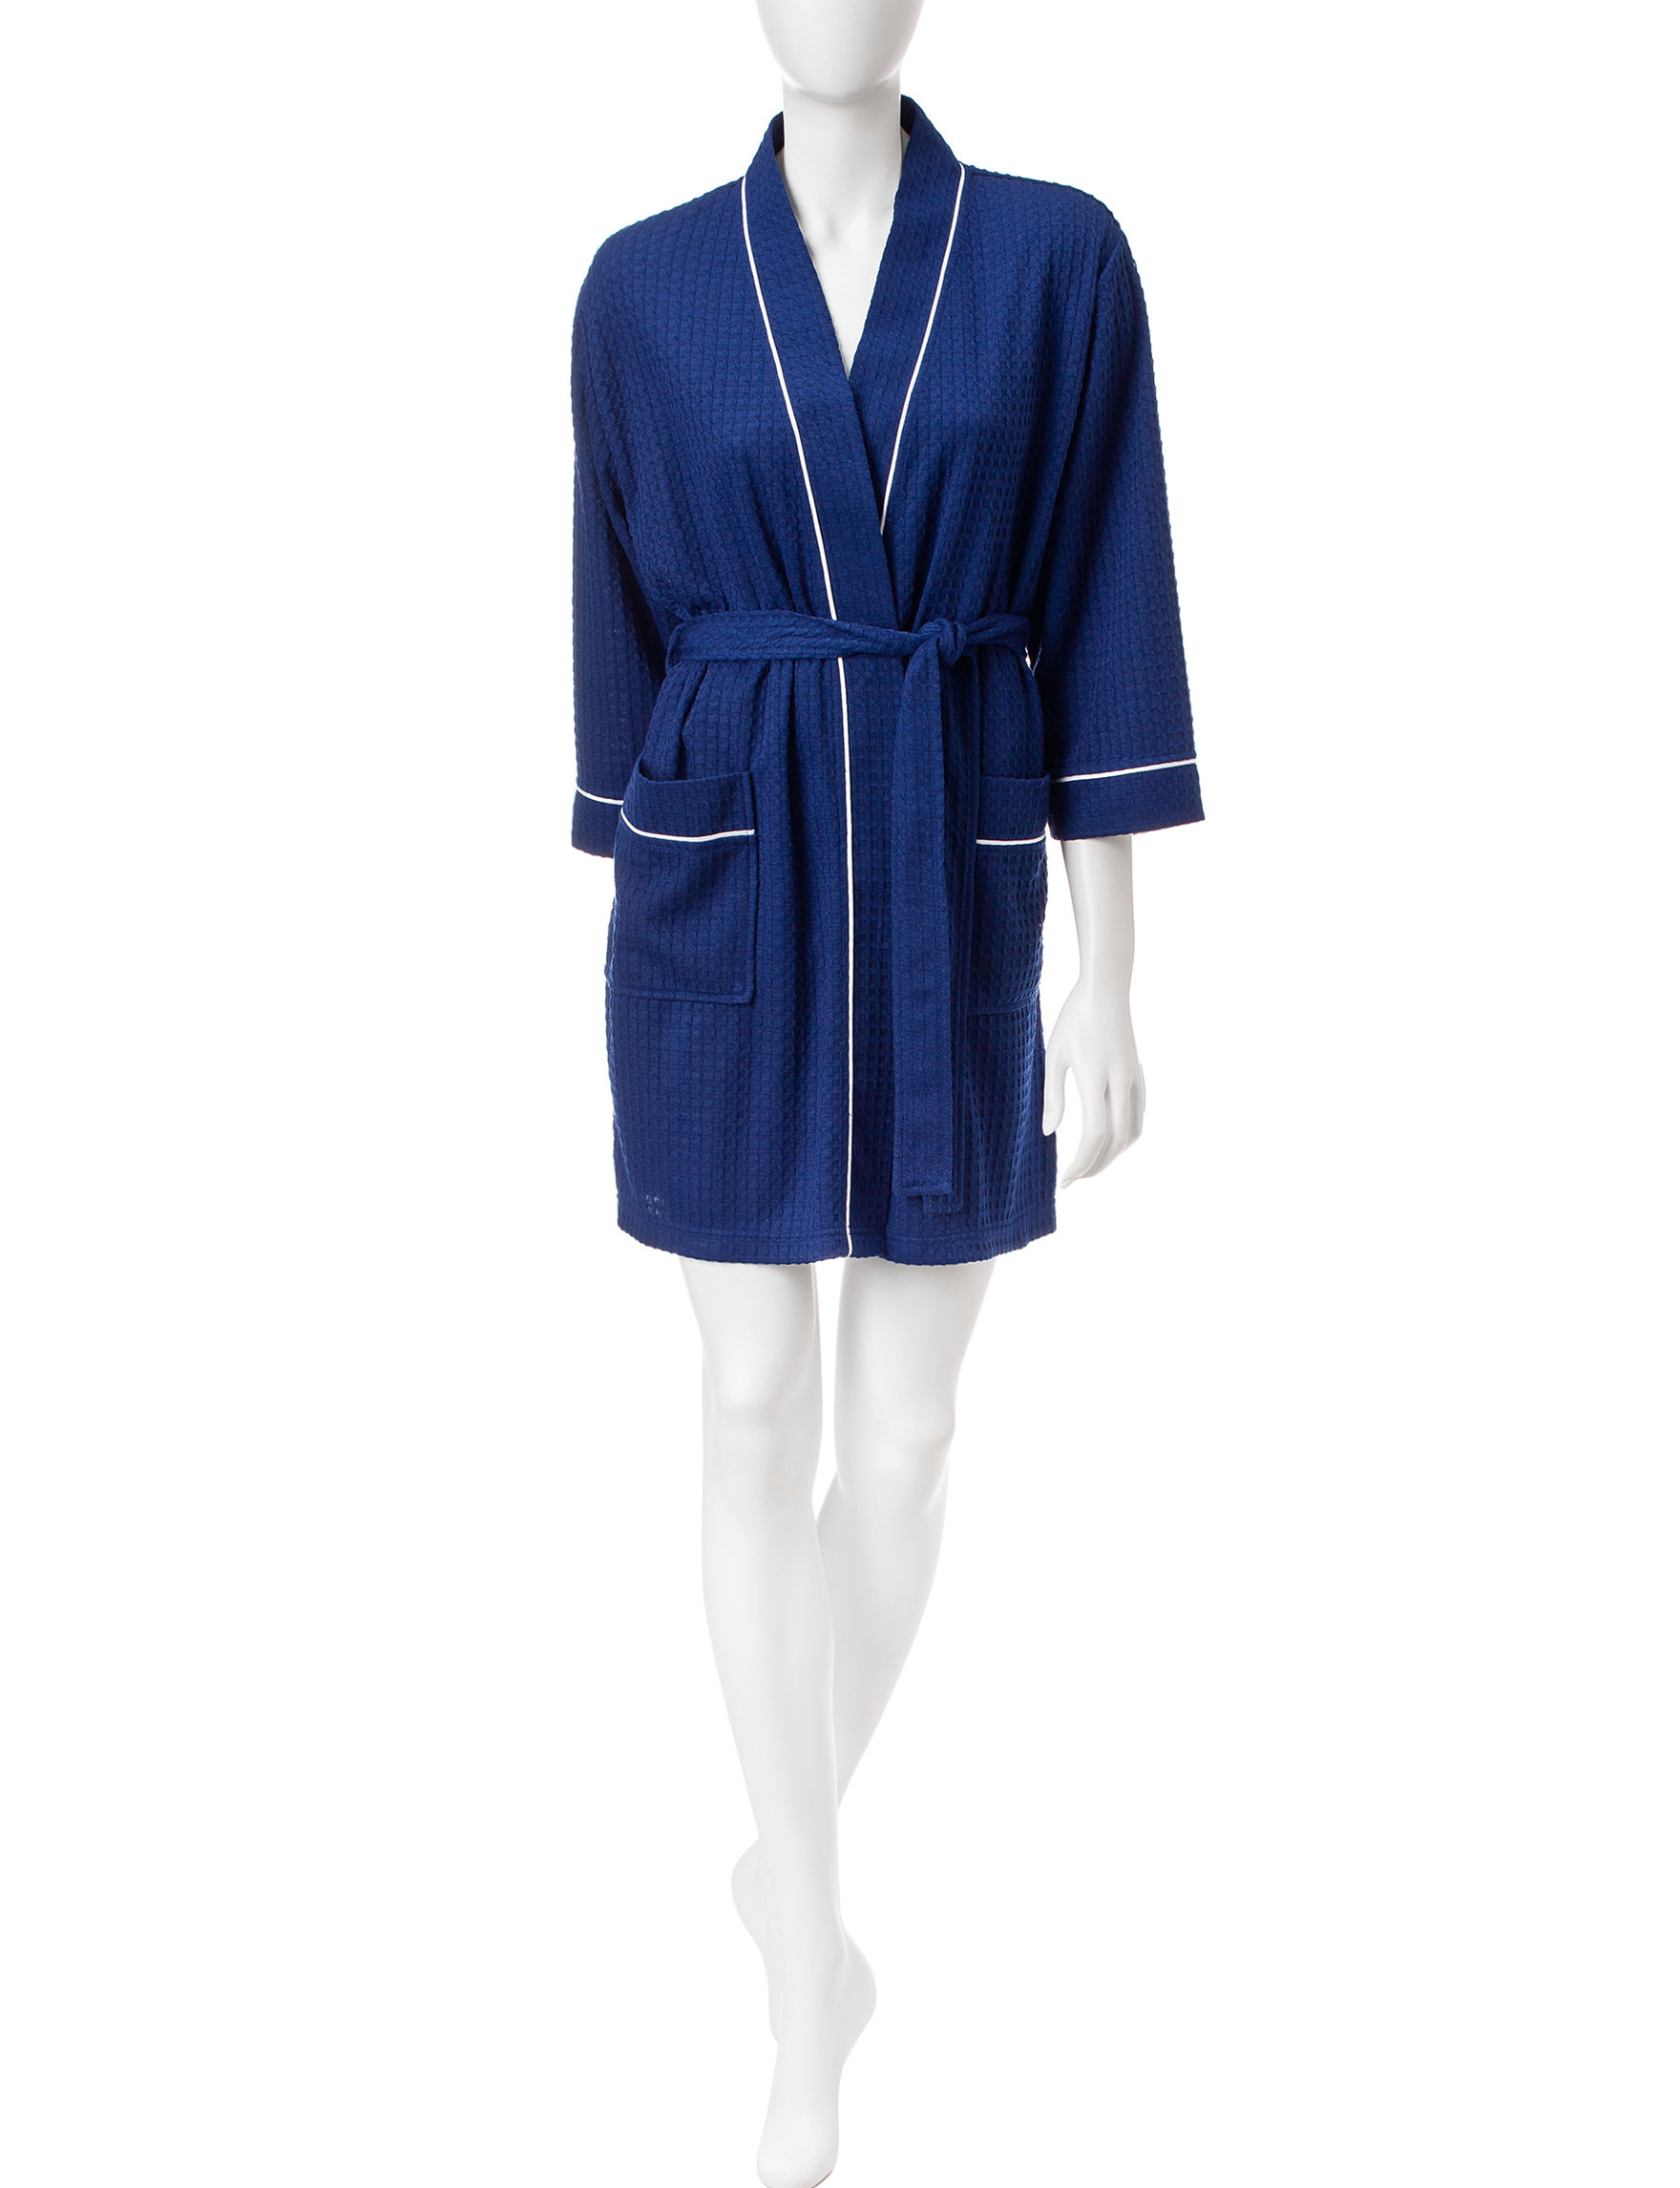 Jasmine Rose Navy Robes, Wraps & Dusters